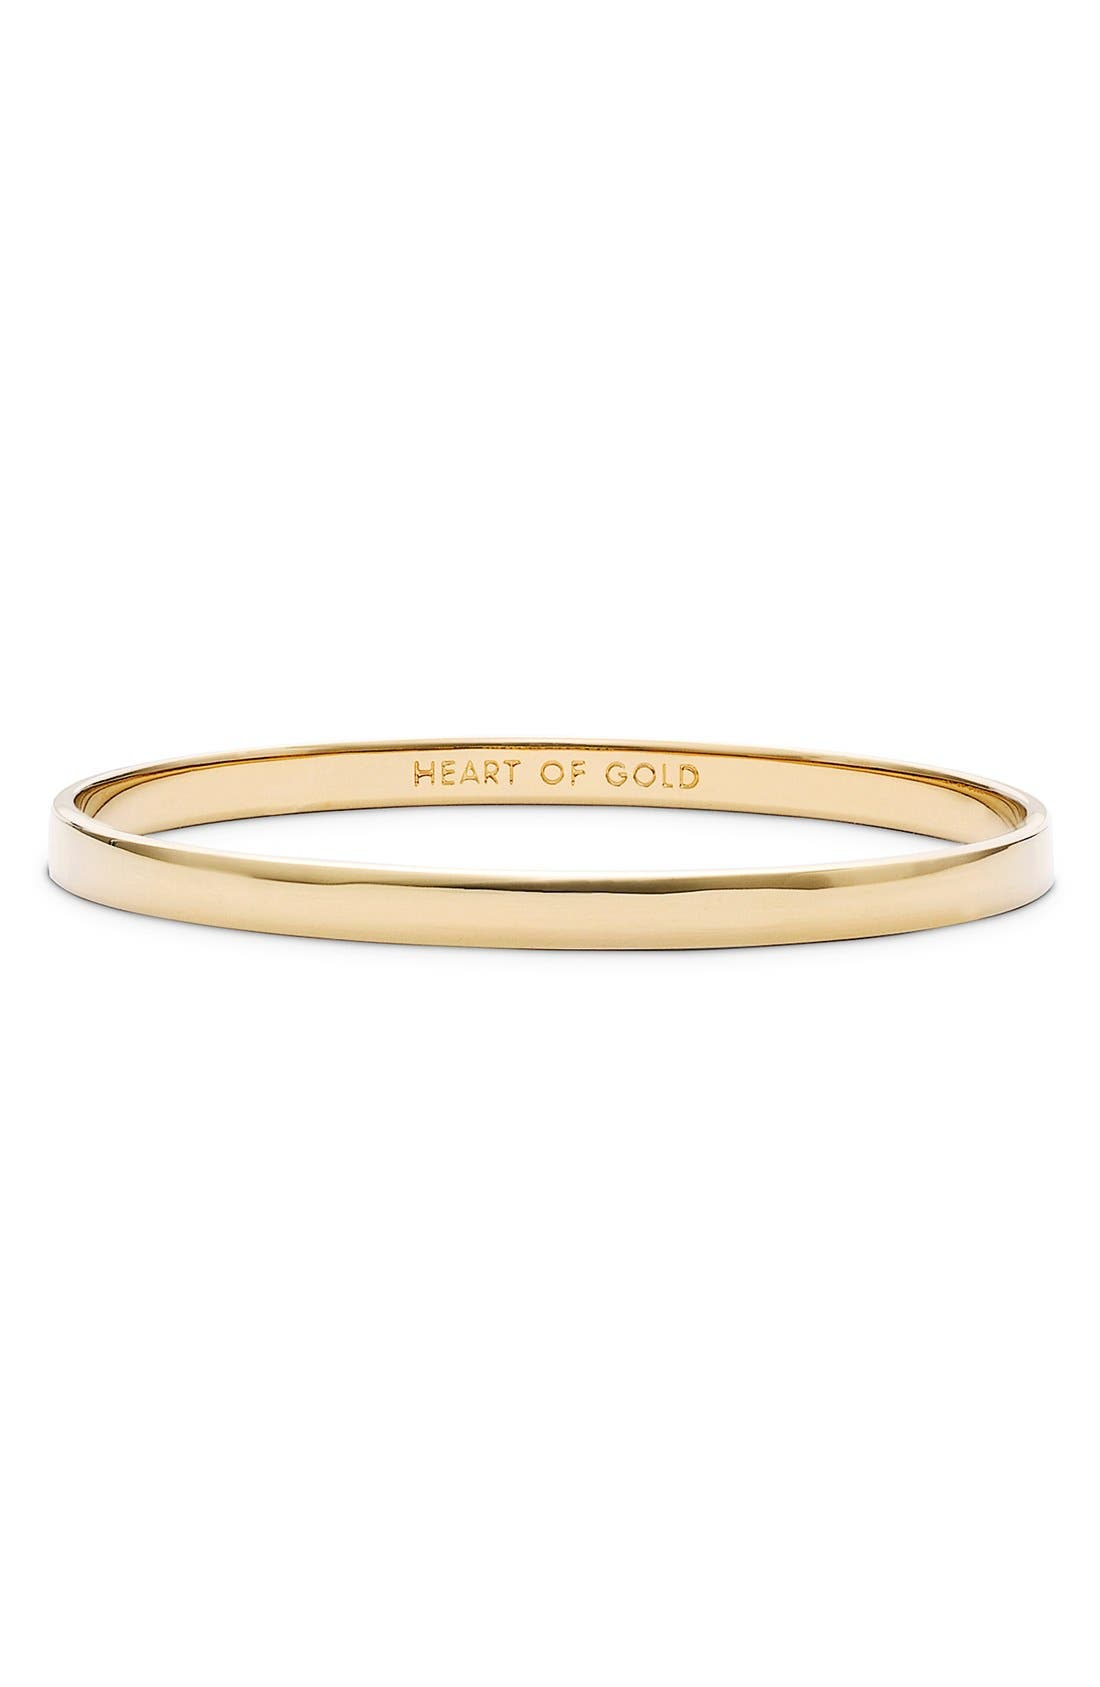 'idiom - heart of gold' bangle,                             Main thumbnail 1, color,                             GOLD